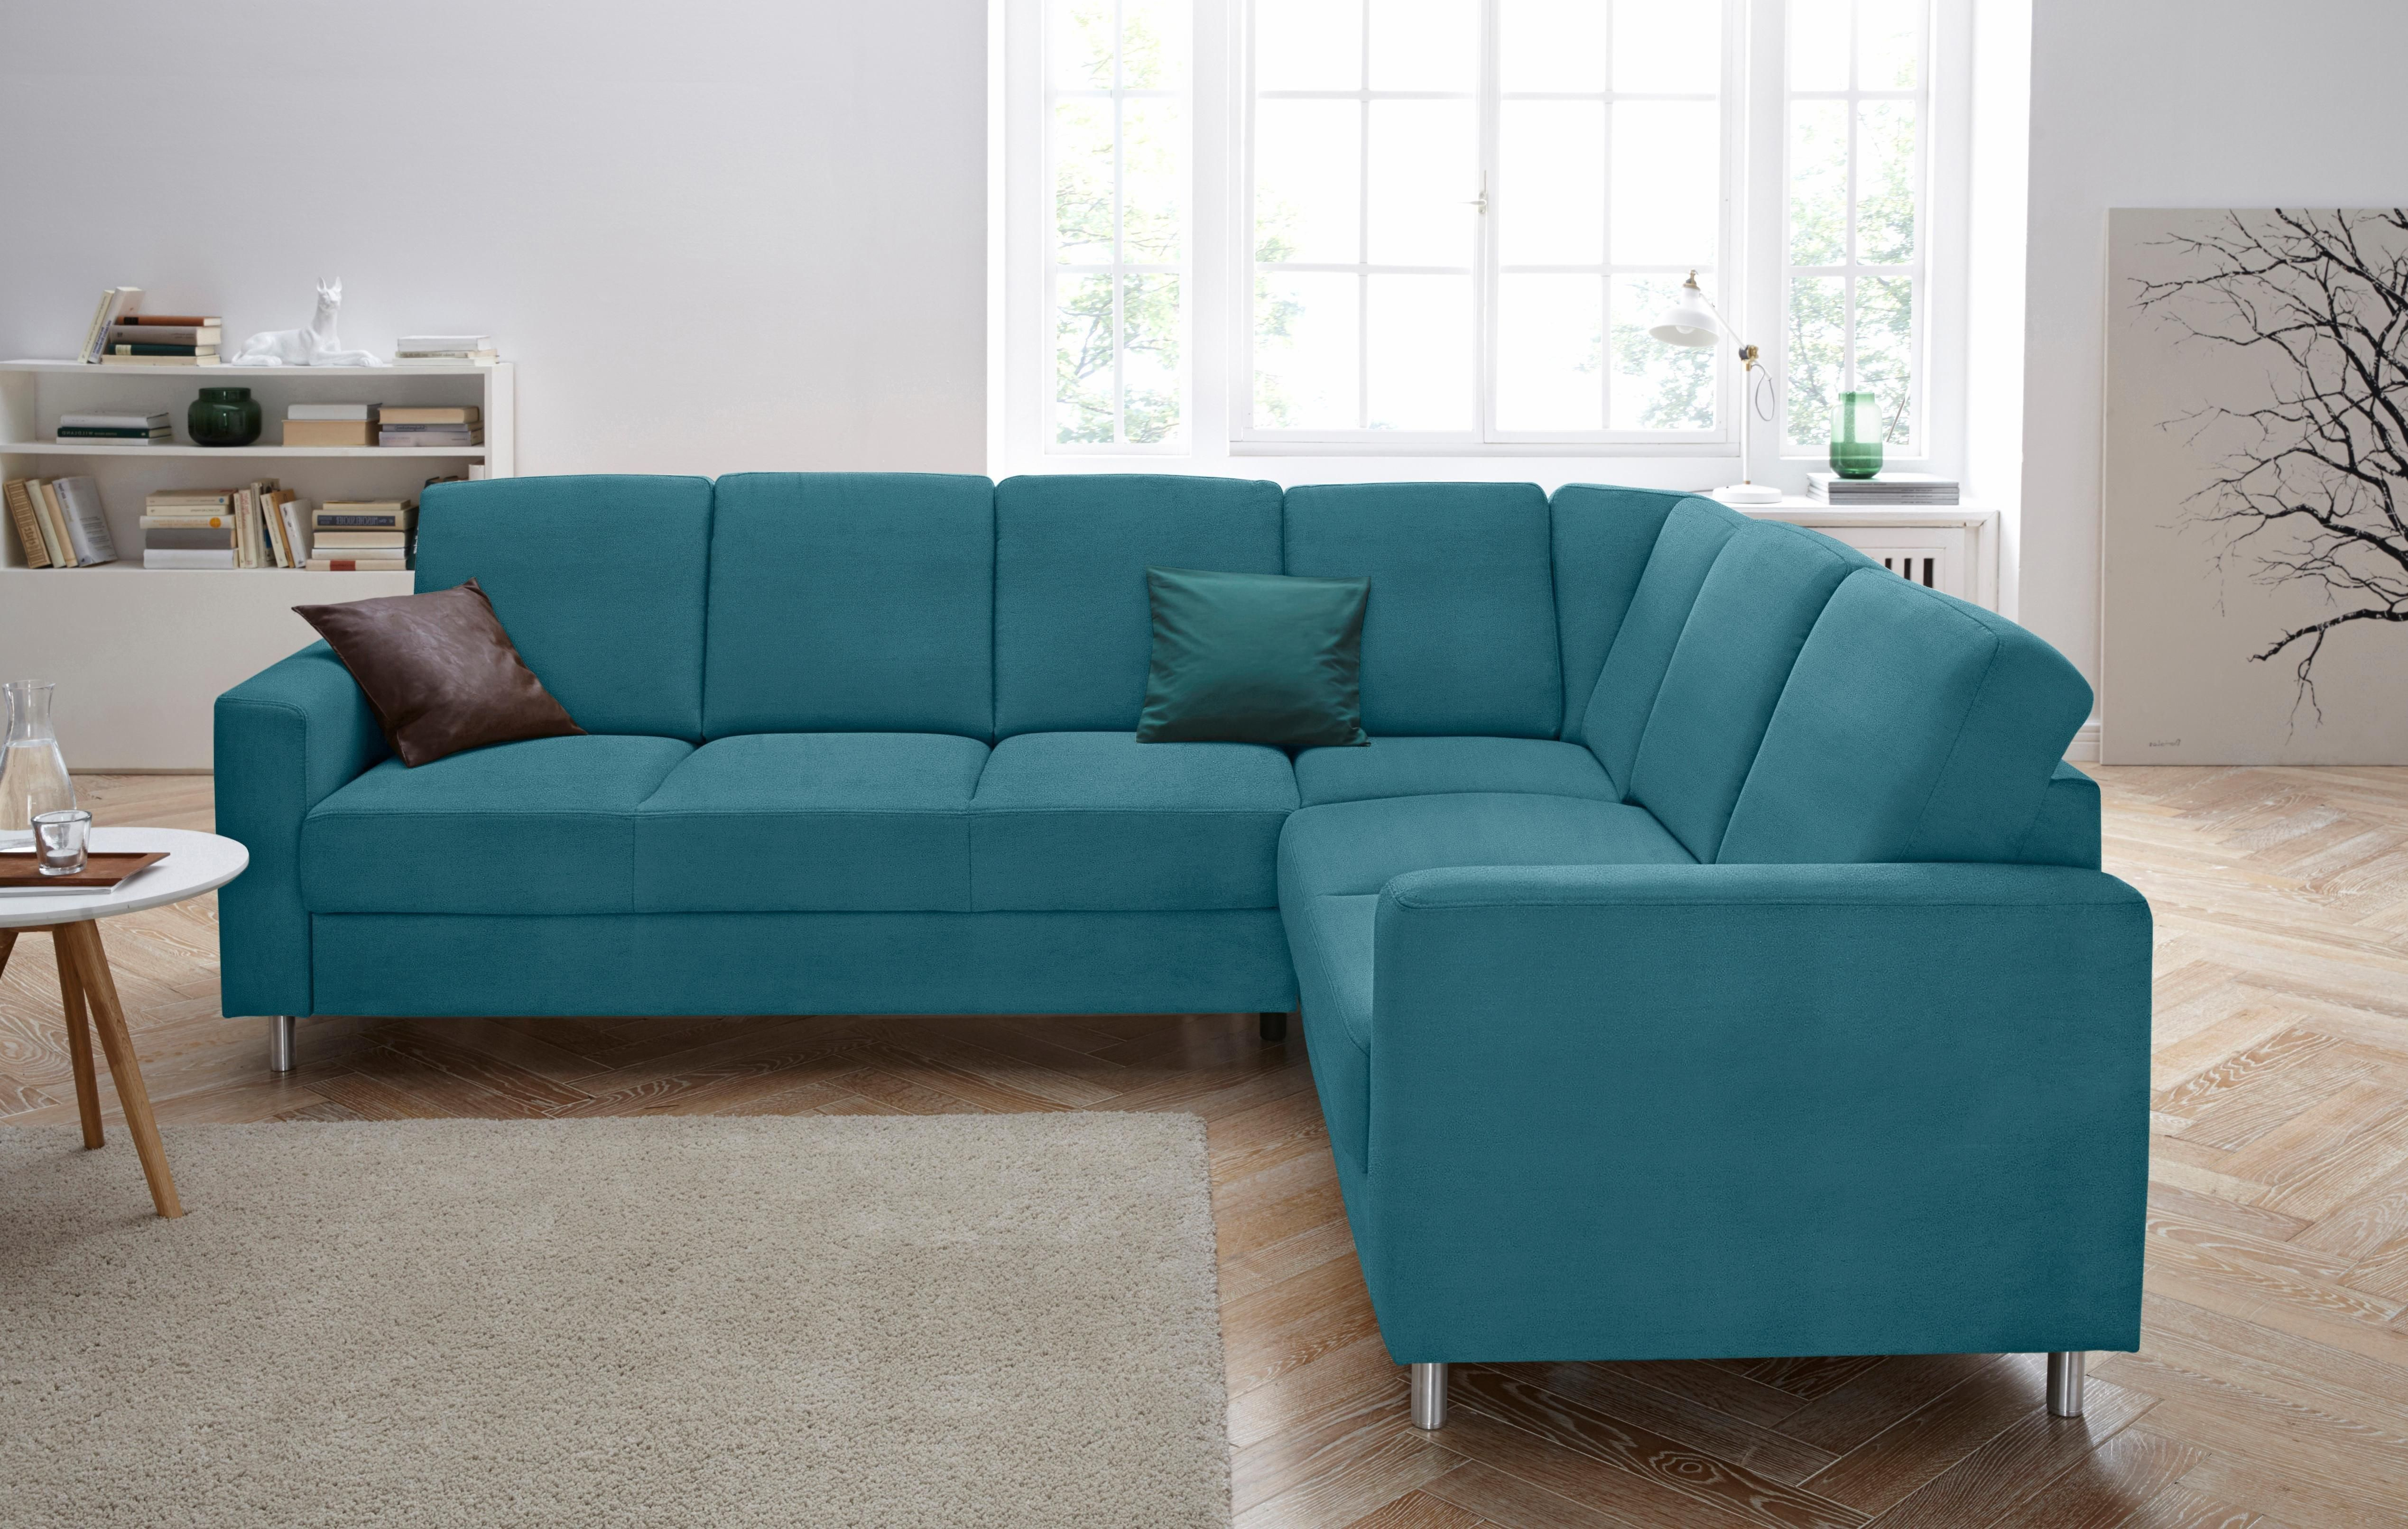 Pin By Ladendirekt On Sofas Couches Sofa Furniture Couch